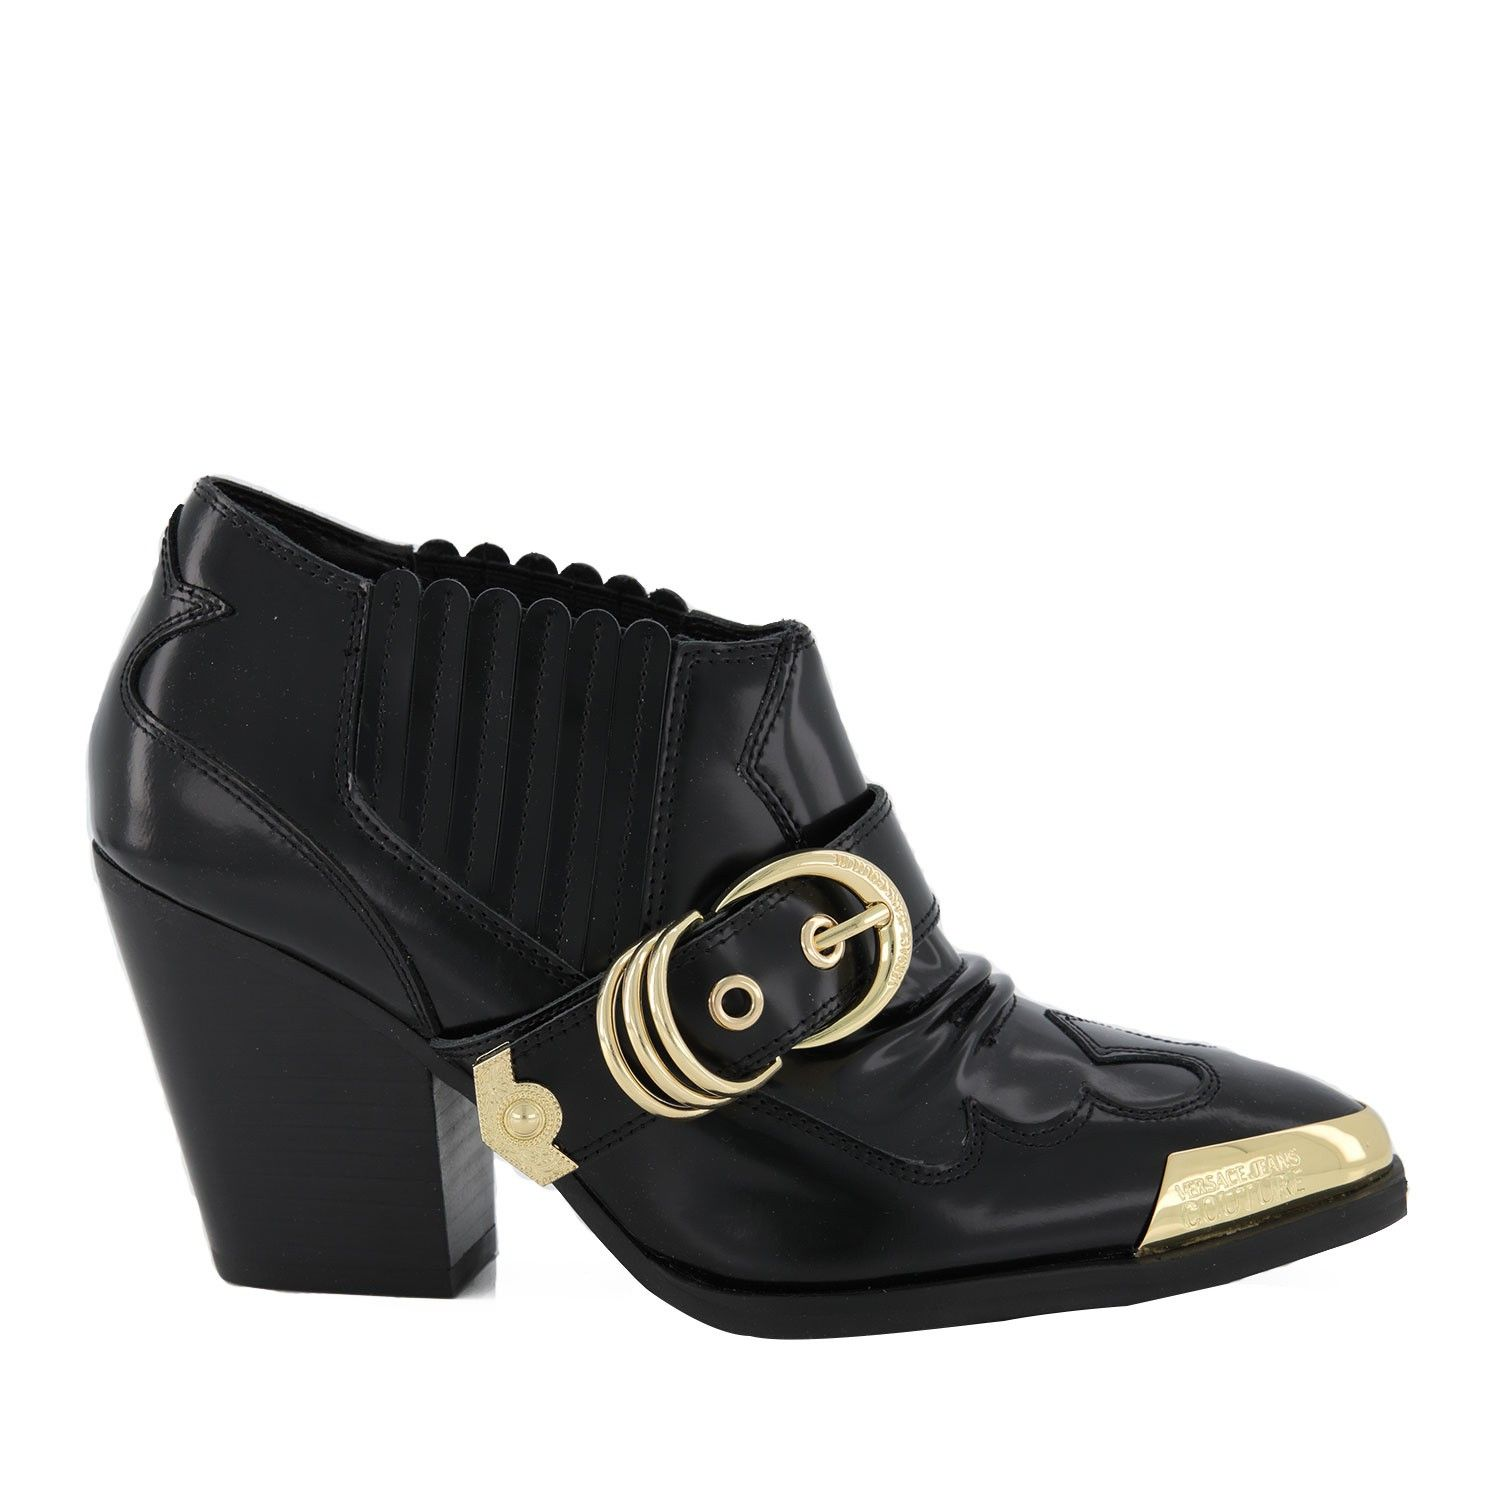 Picture of Versace E0VVBS11 womens boots black